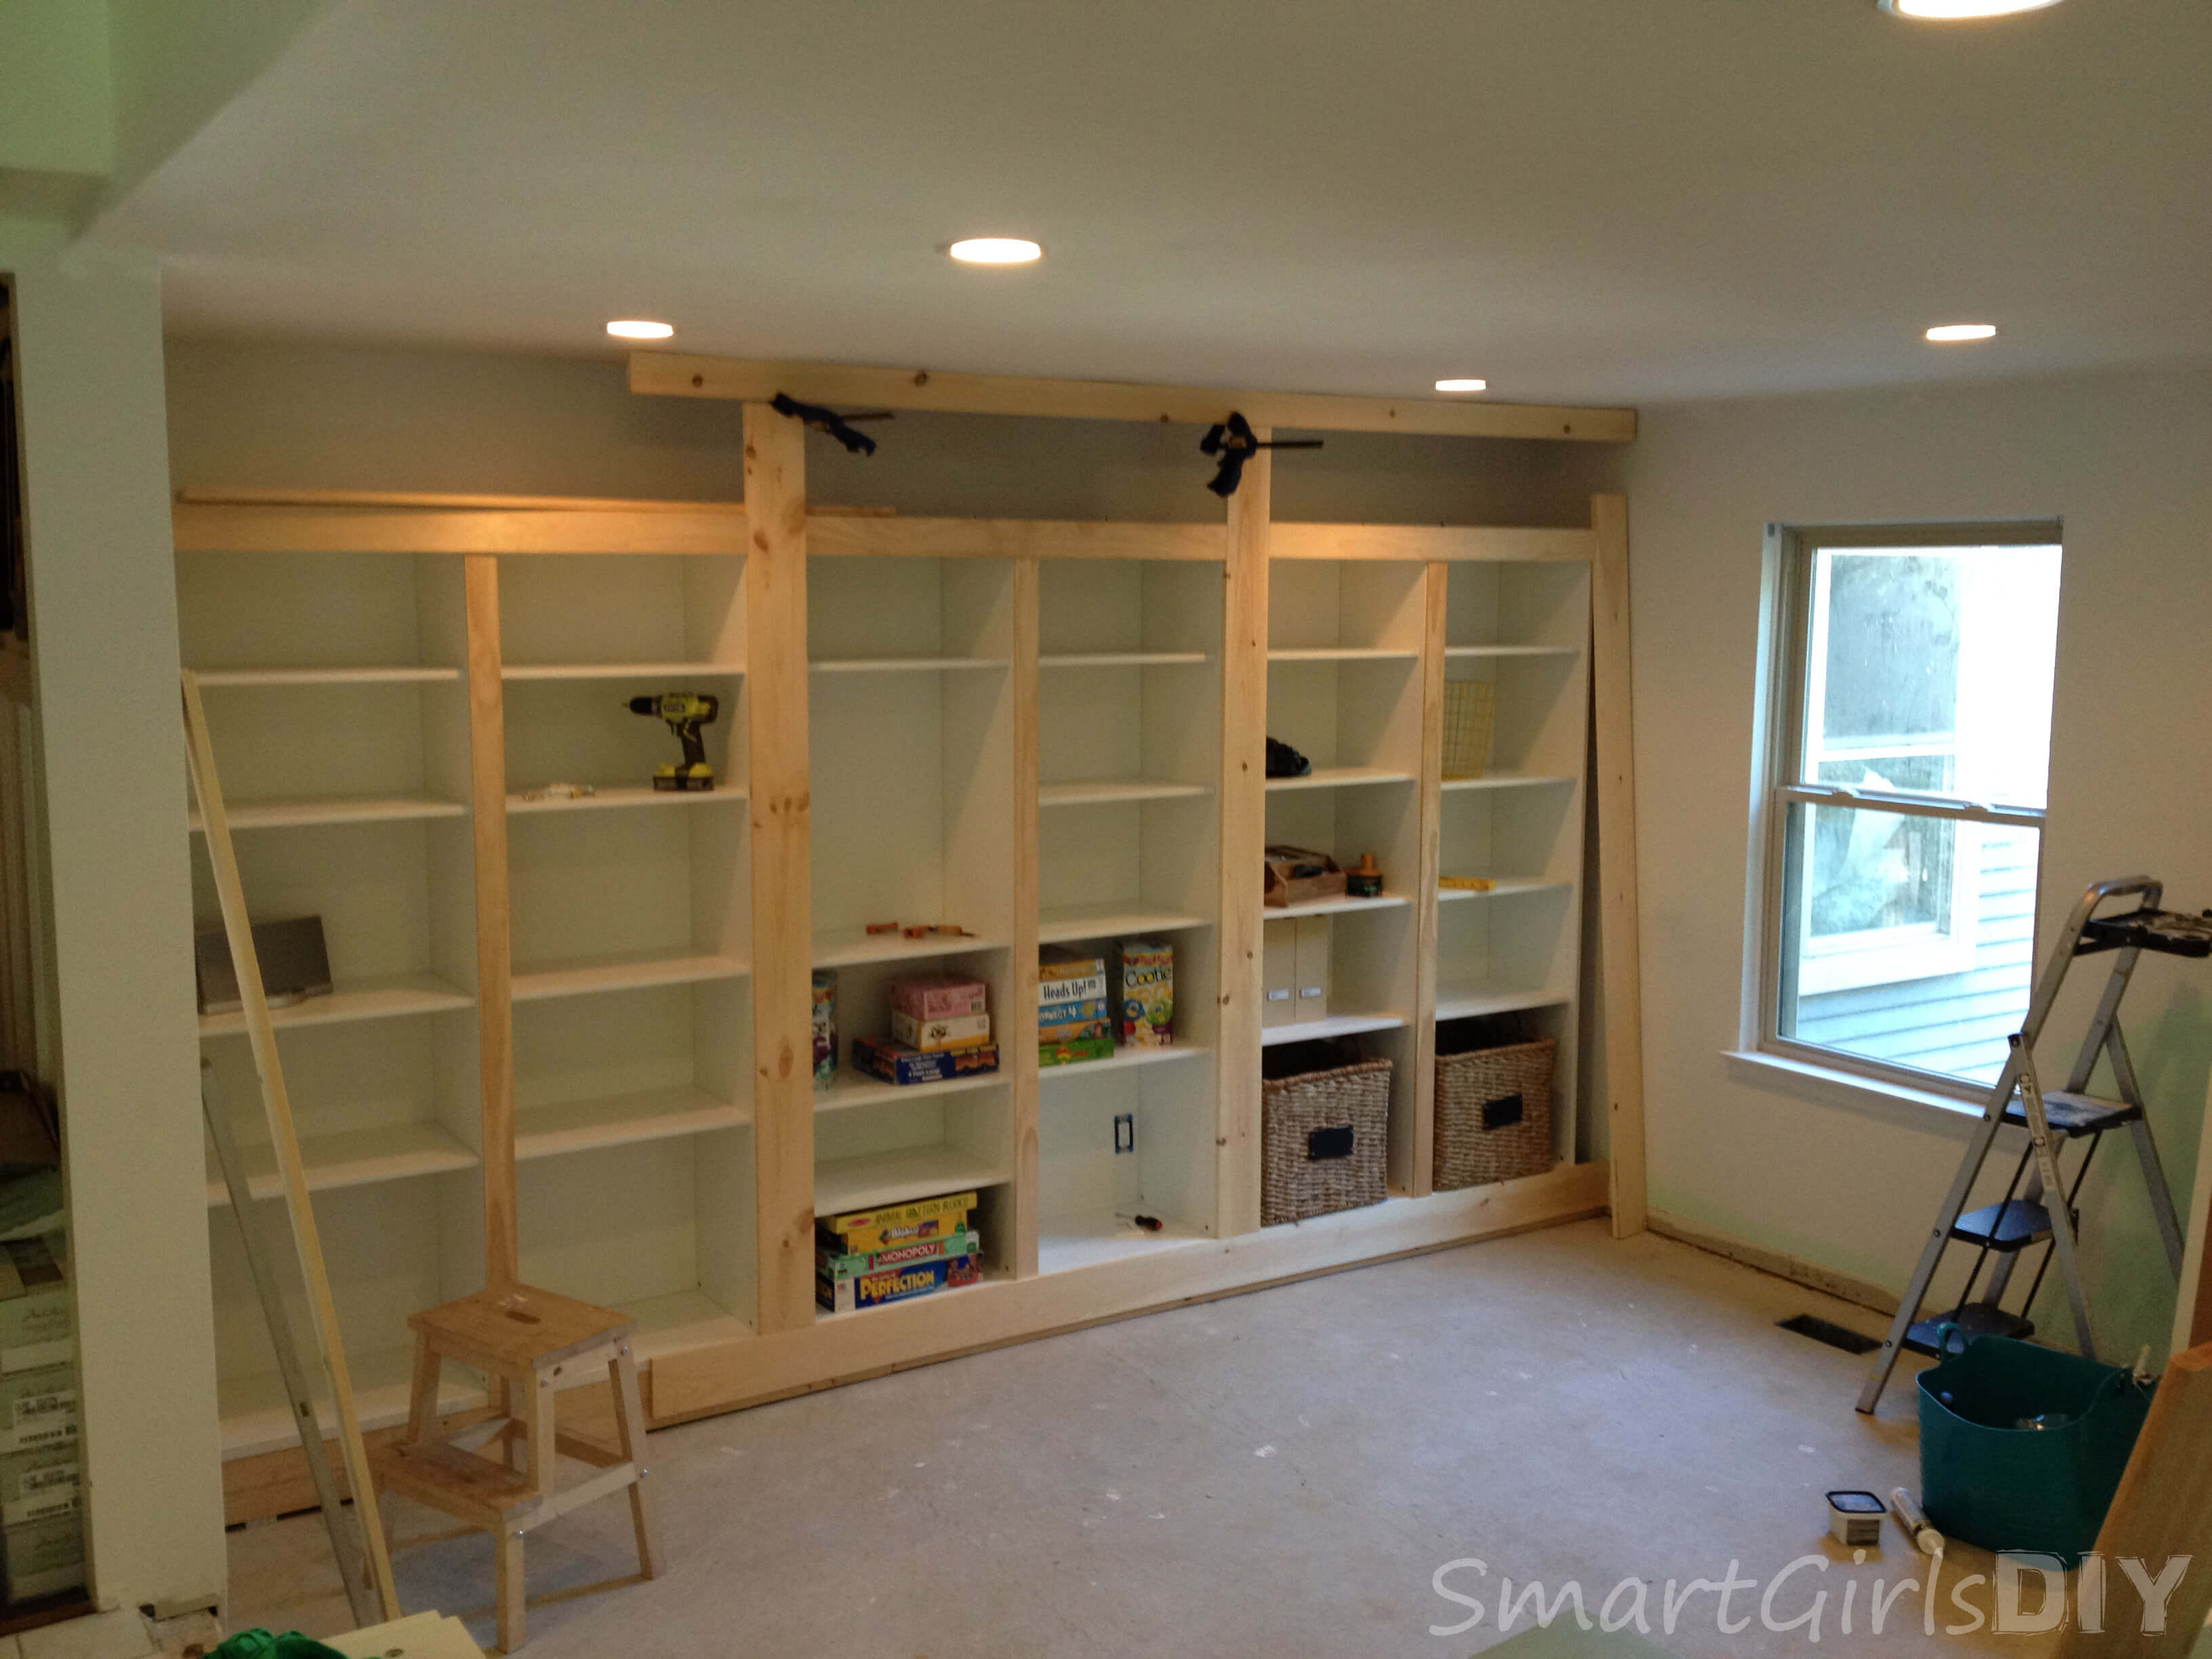 DIY Builtin Bookshelves Using Ikea BESTA Family Room - Diy built in shelves